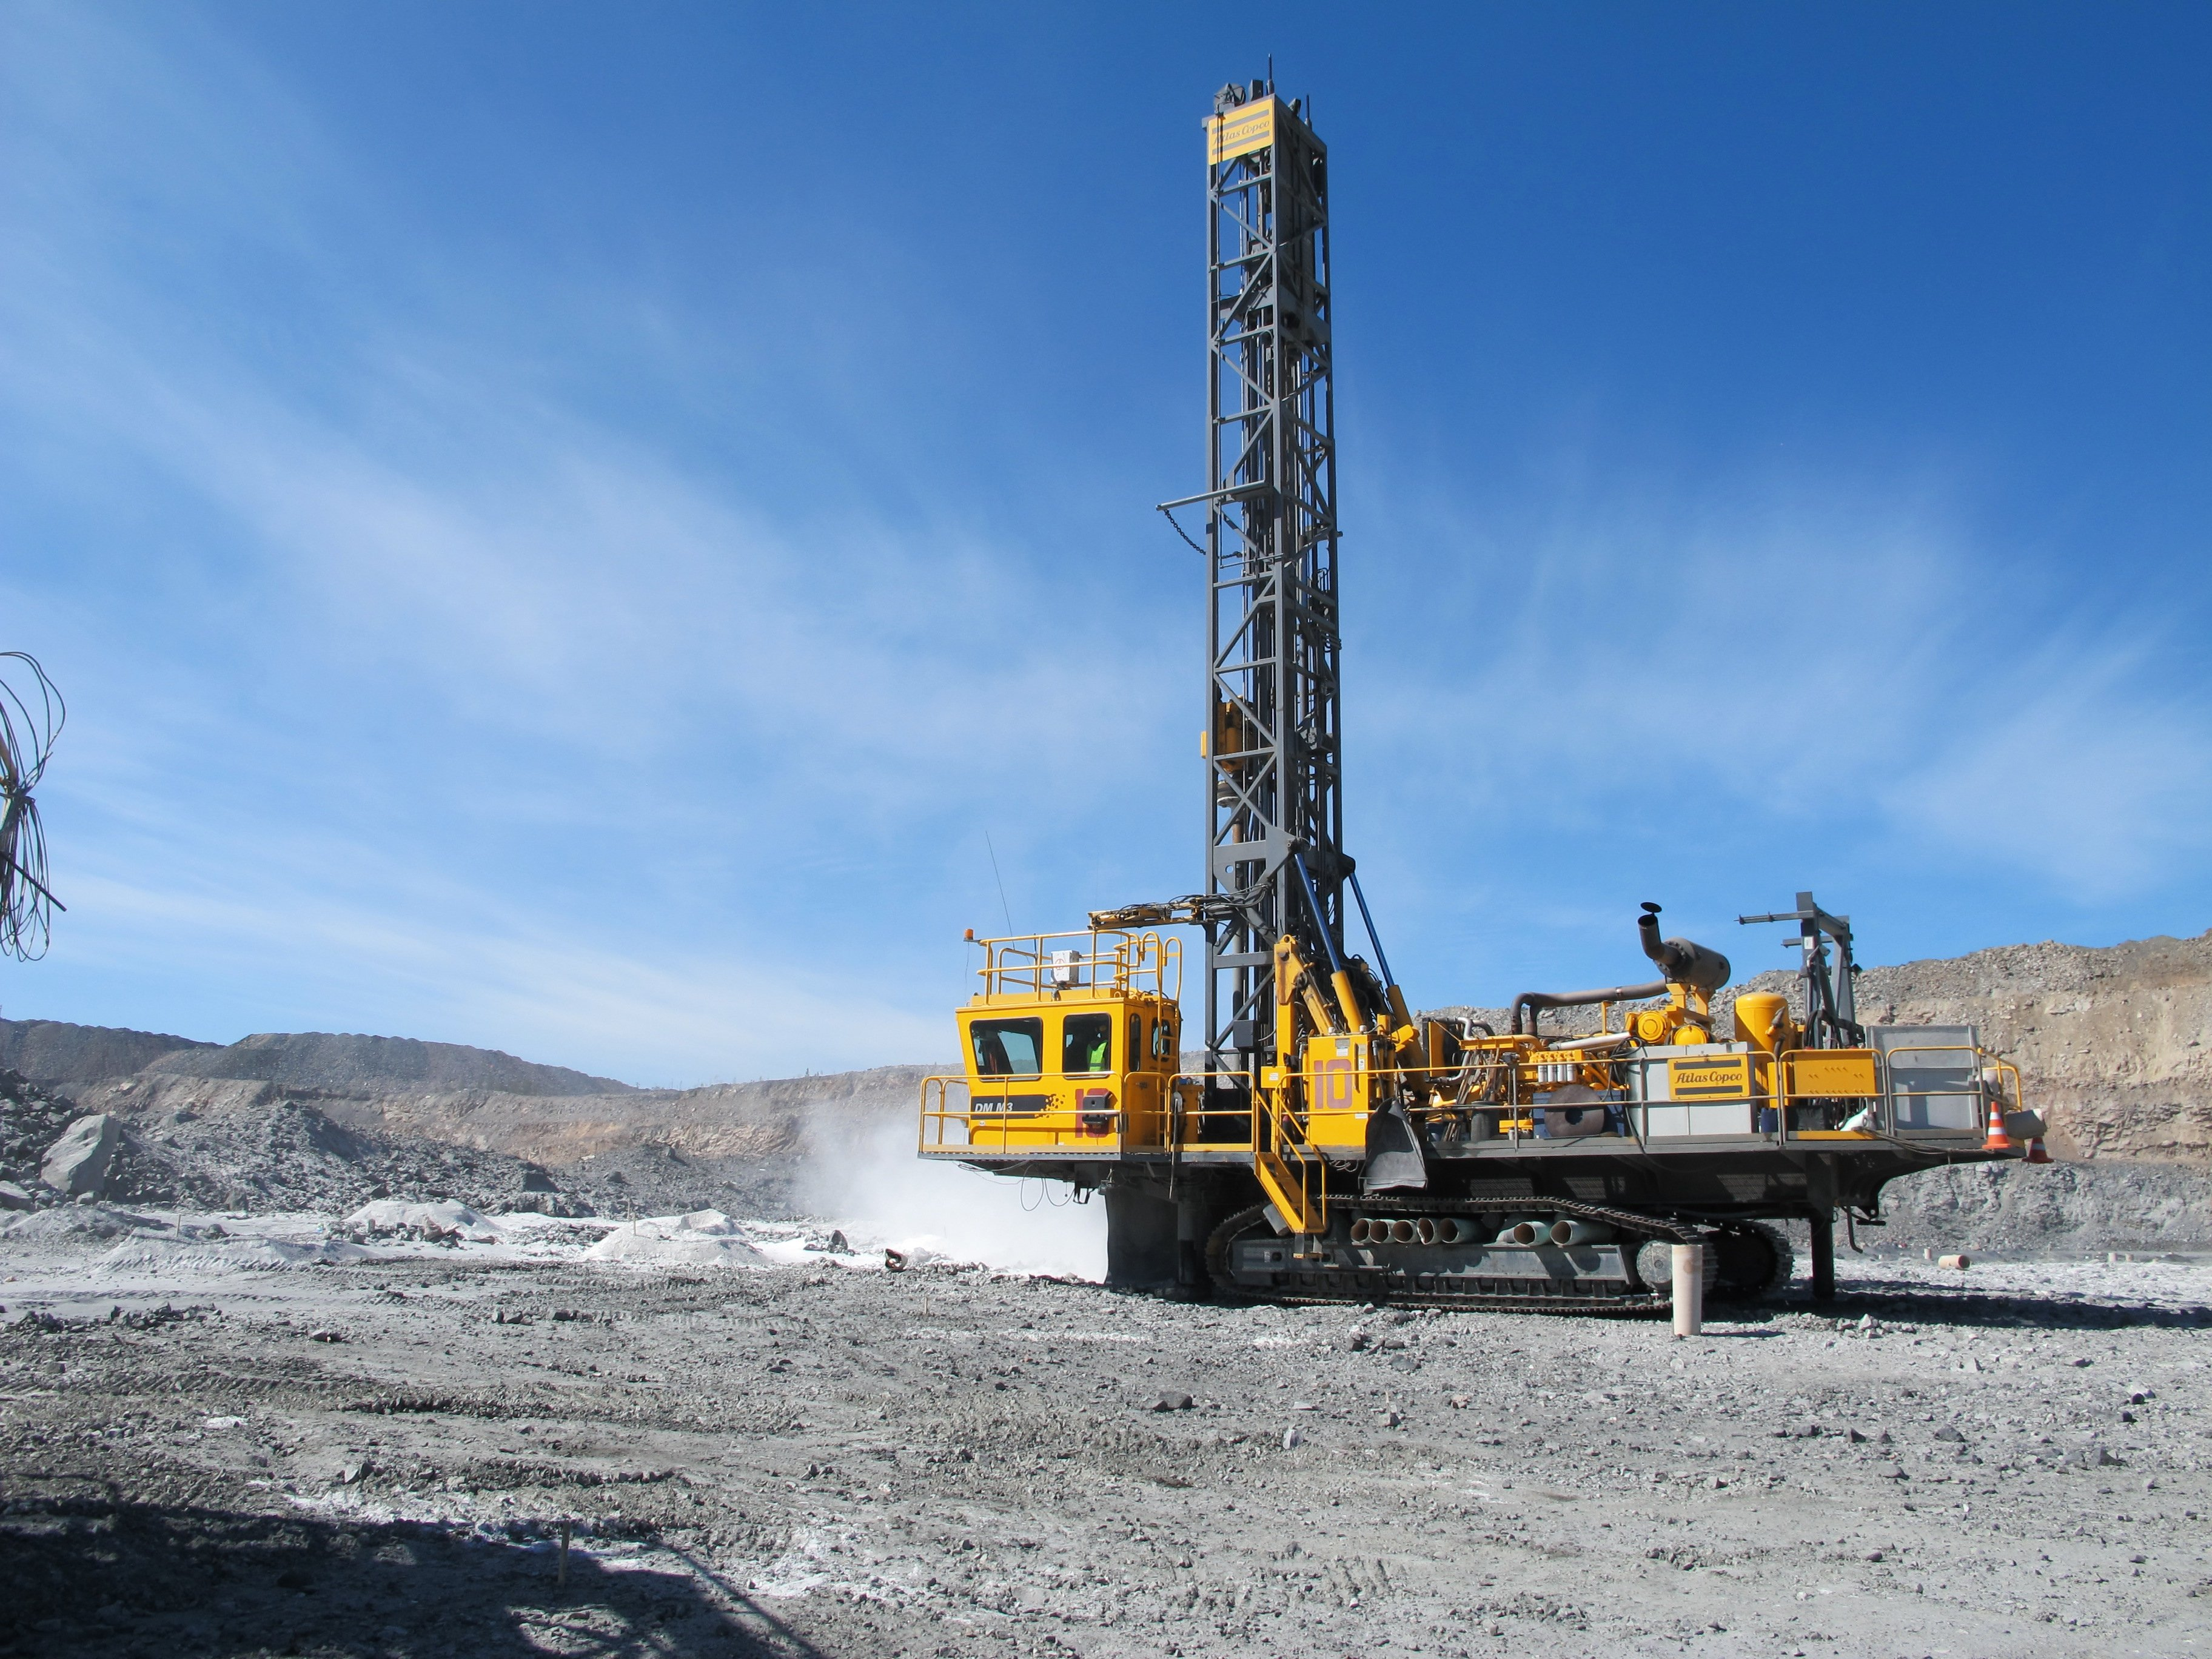 Water Patterns Atlas Copco S Dm M3 Drills For Iron Ore In Russia